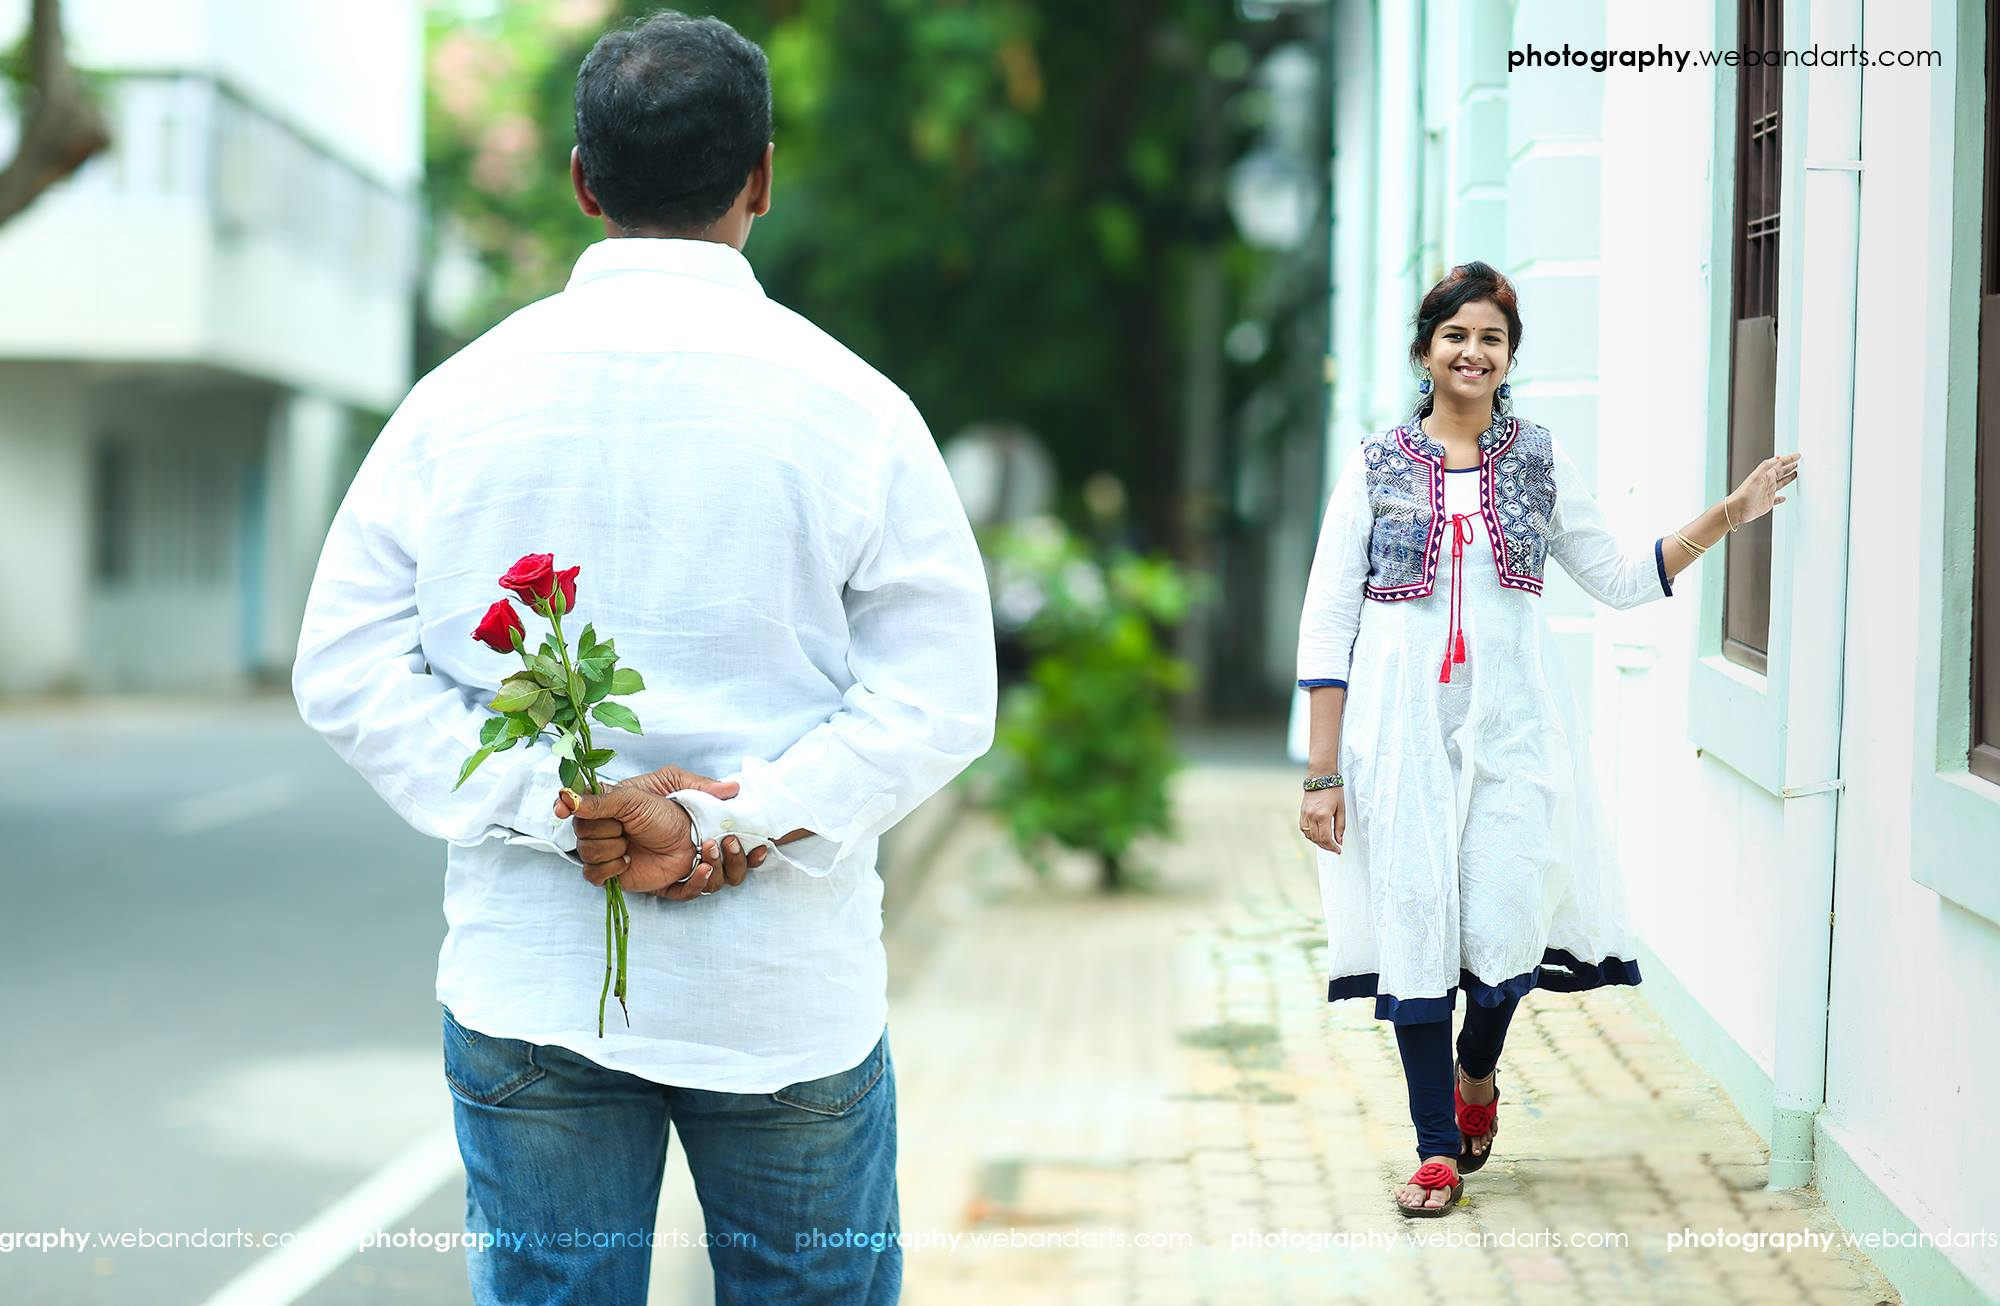 40. Its proposing time with roses